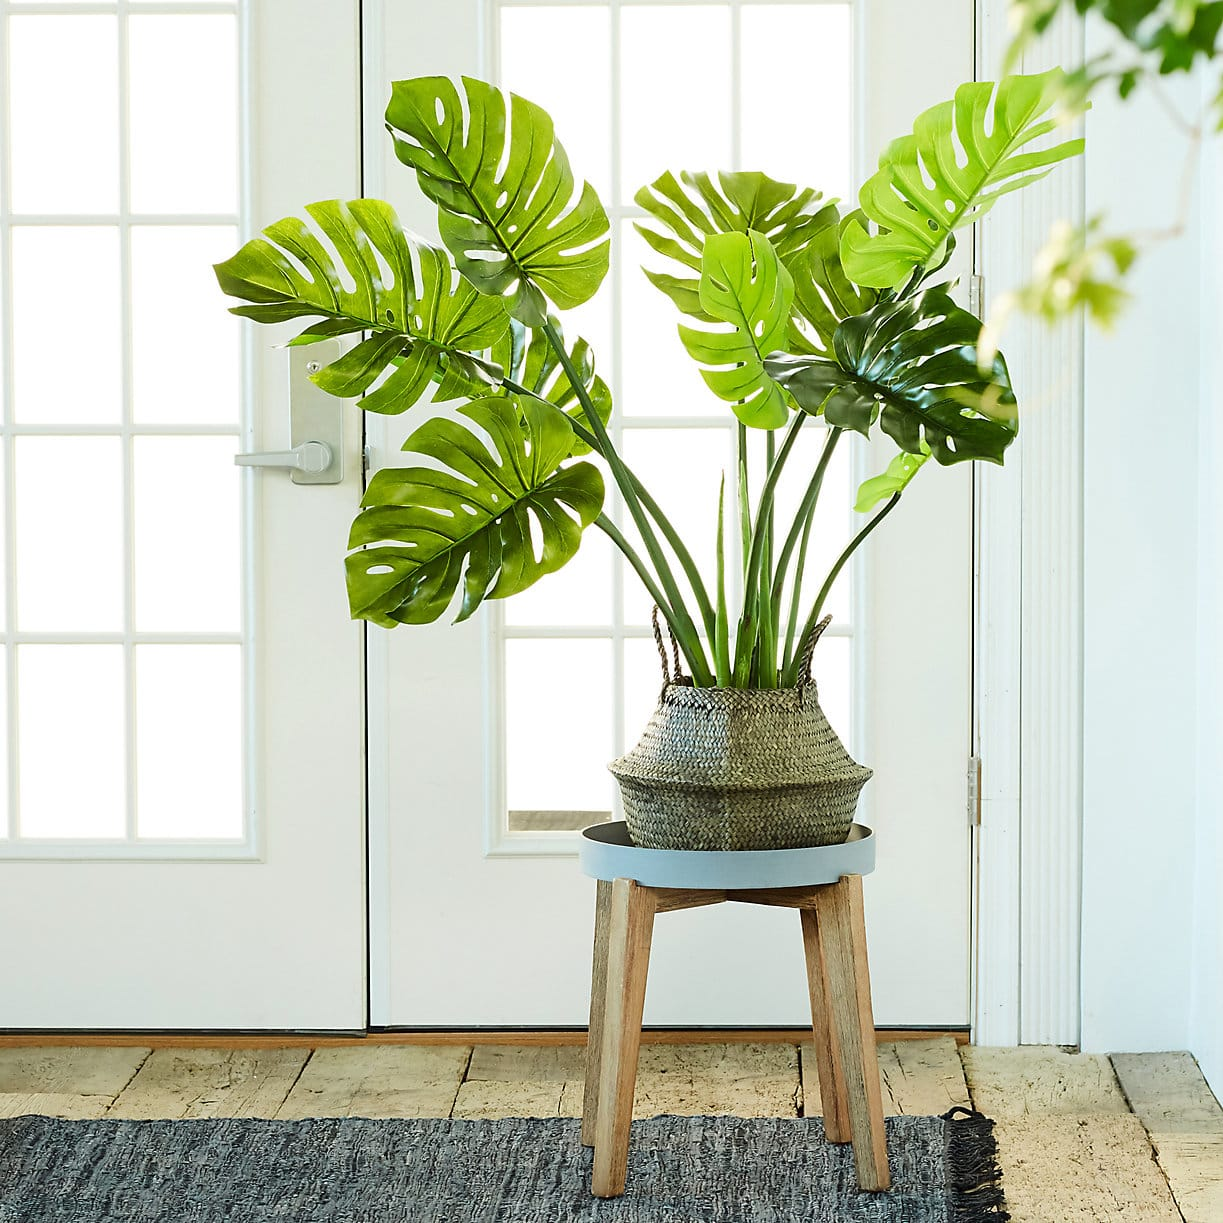 Faux Plants - Fake Plants That Look Real | Apartment Therapy